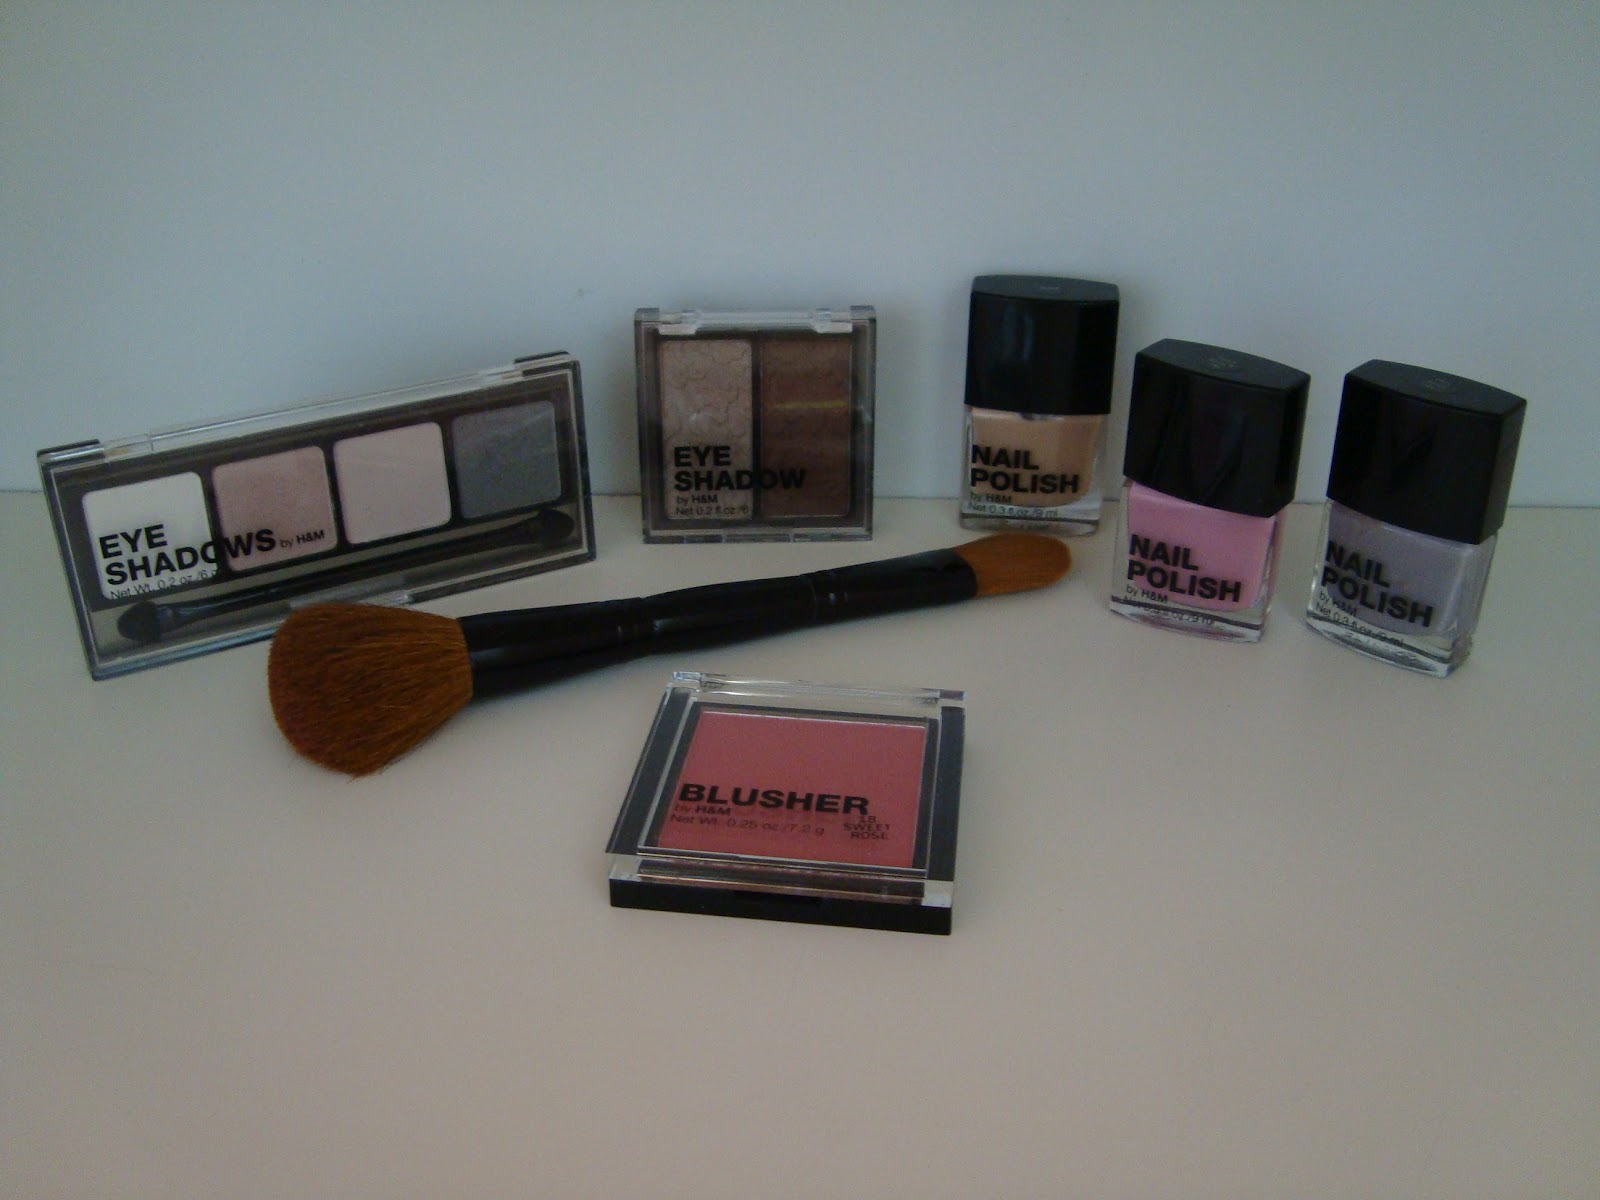 amp;mBazar Chez Mode De Blog Que D'alison Vaut Le Make H Up 8wOPNkZnX0